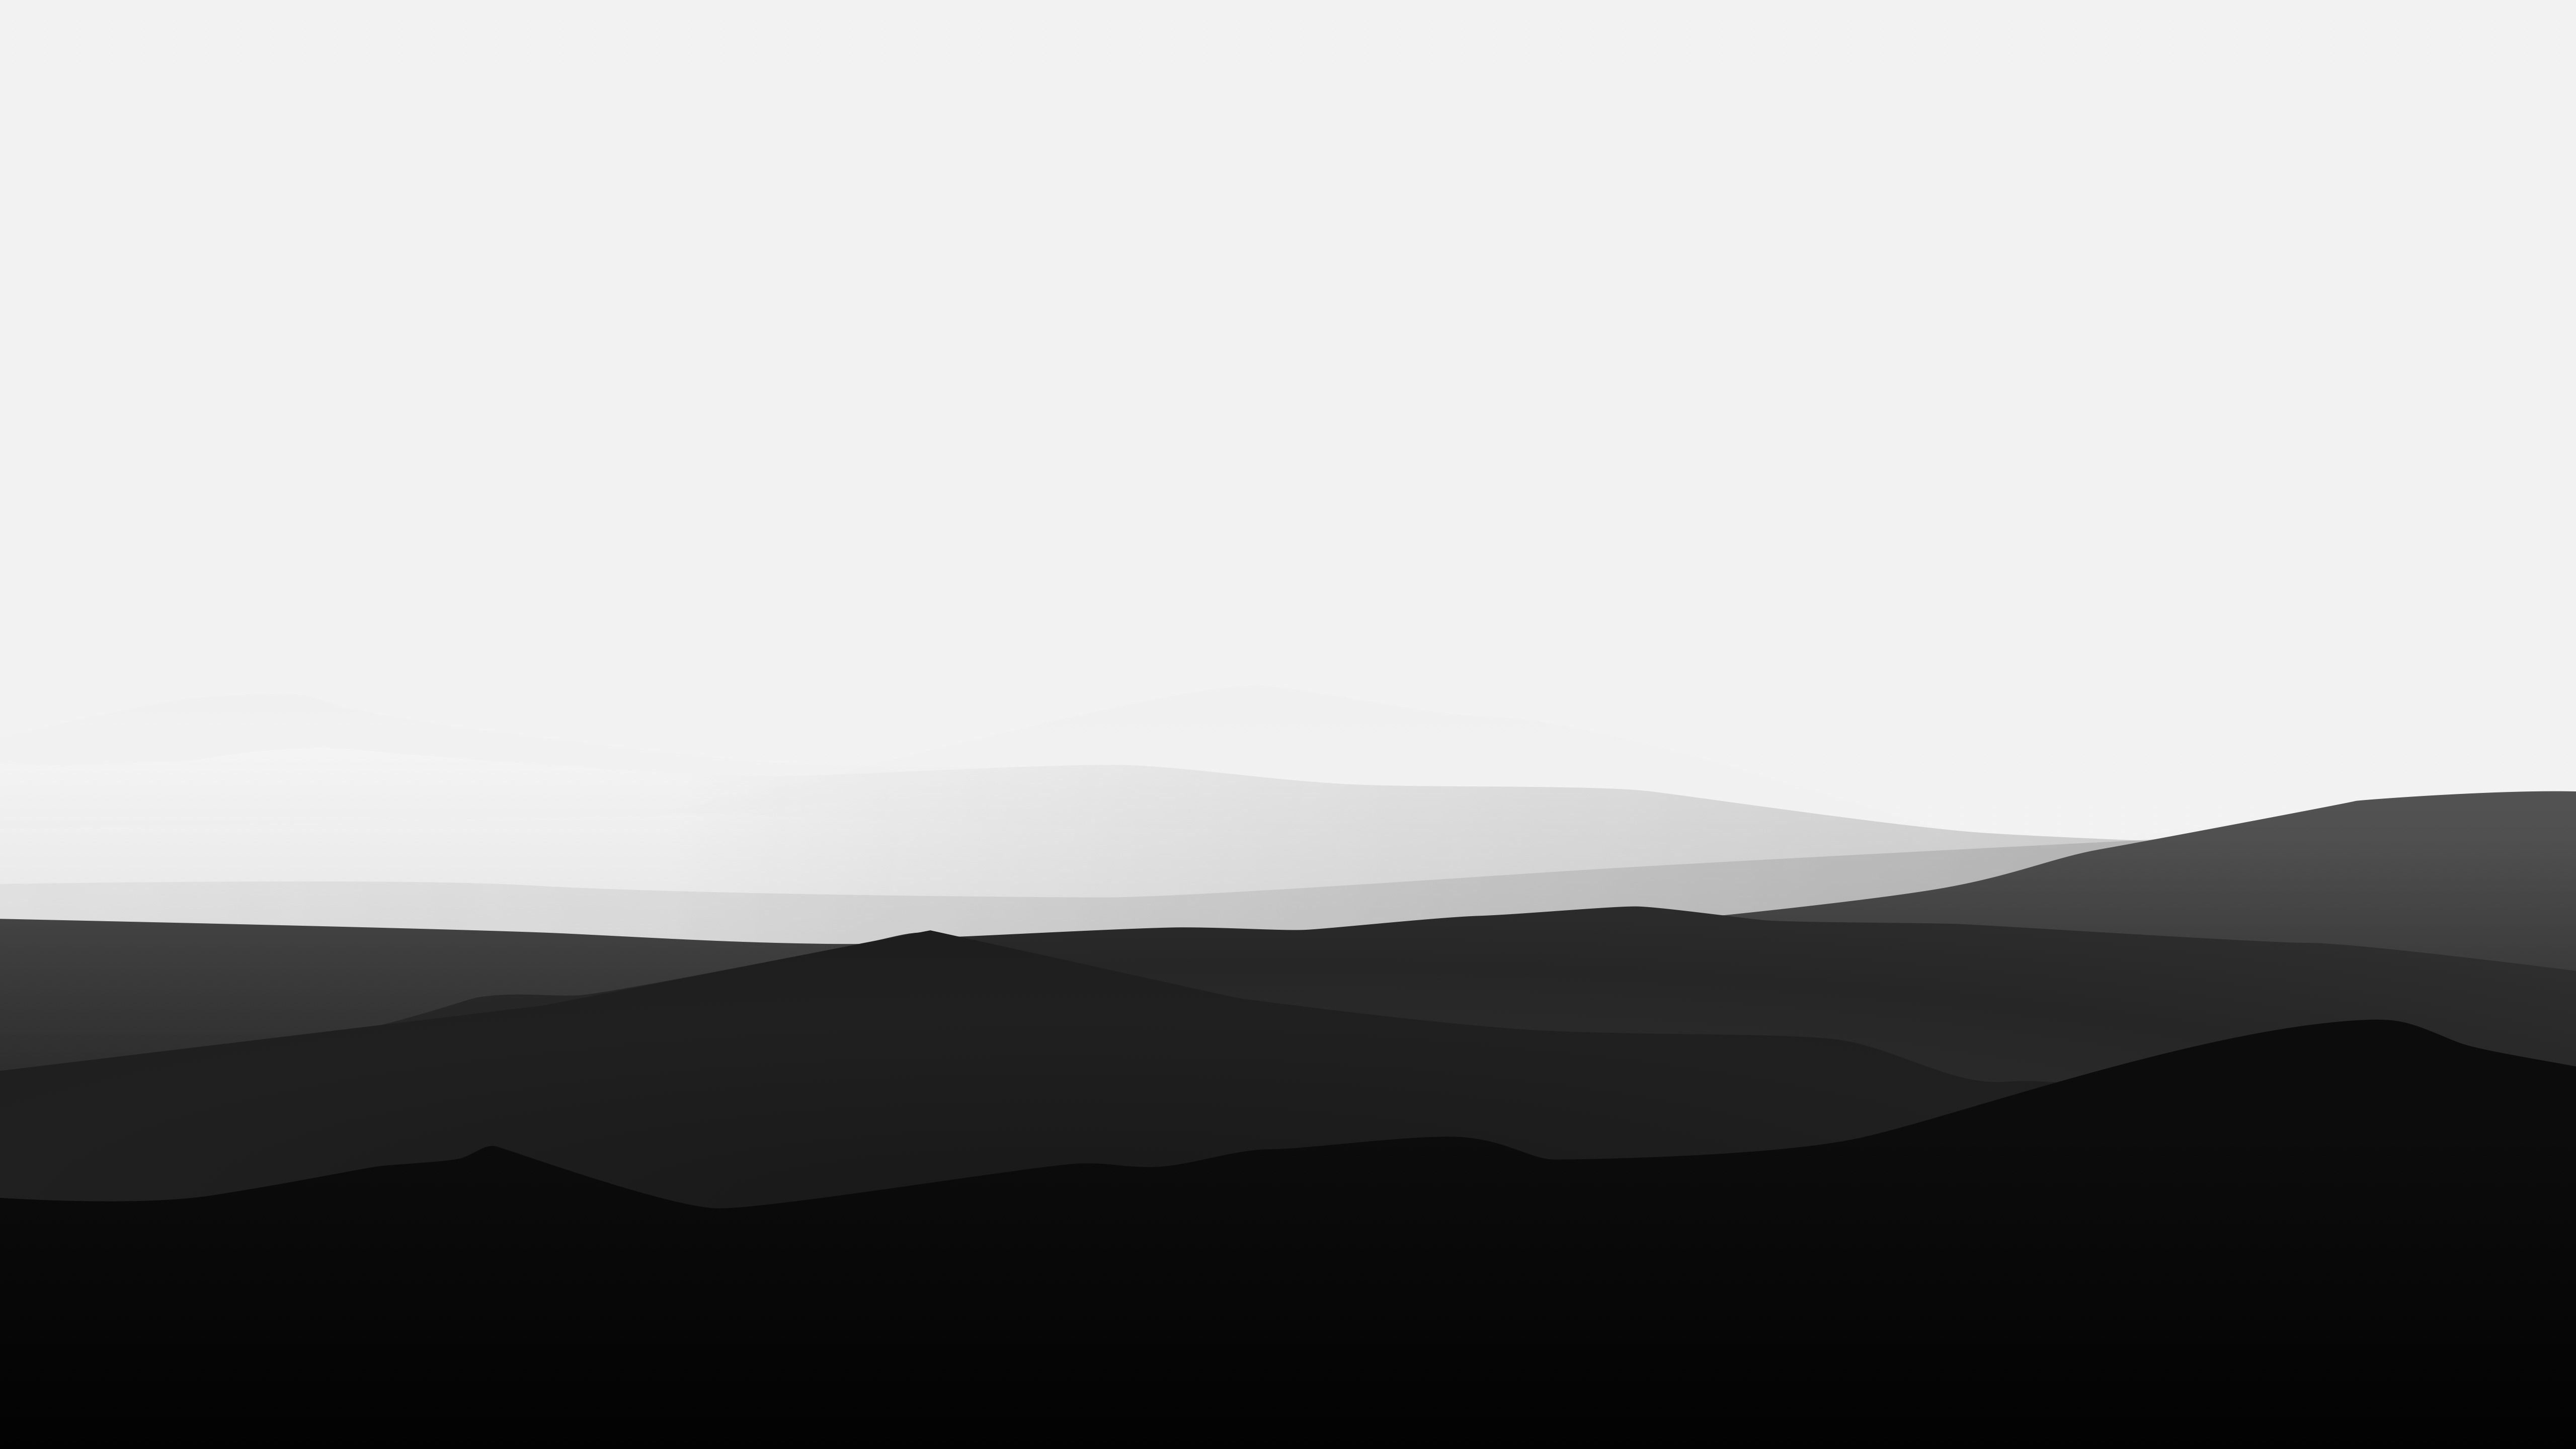 Aesthetic Minimalist Black And White Wallpaper 4k